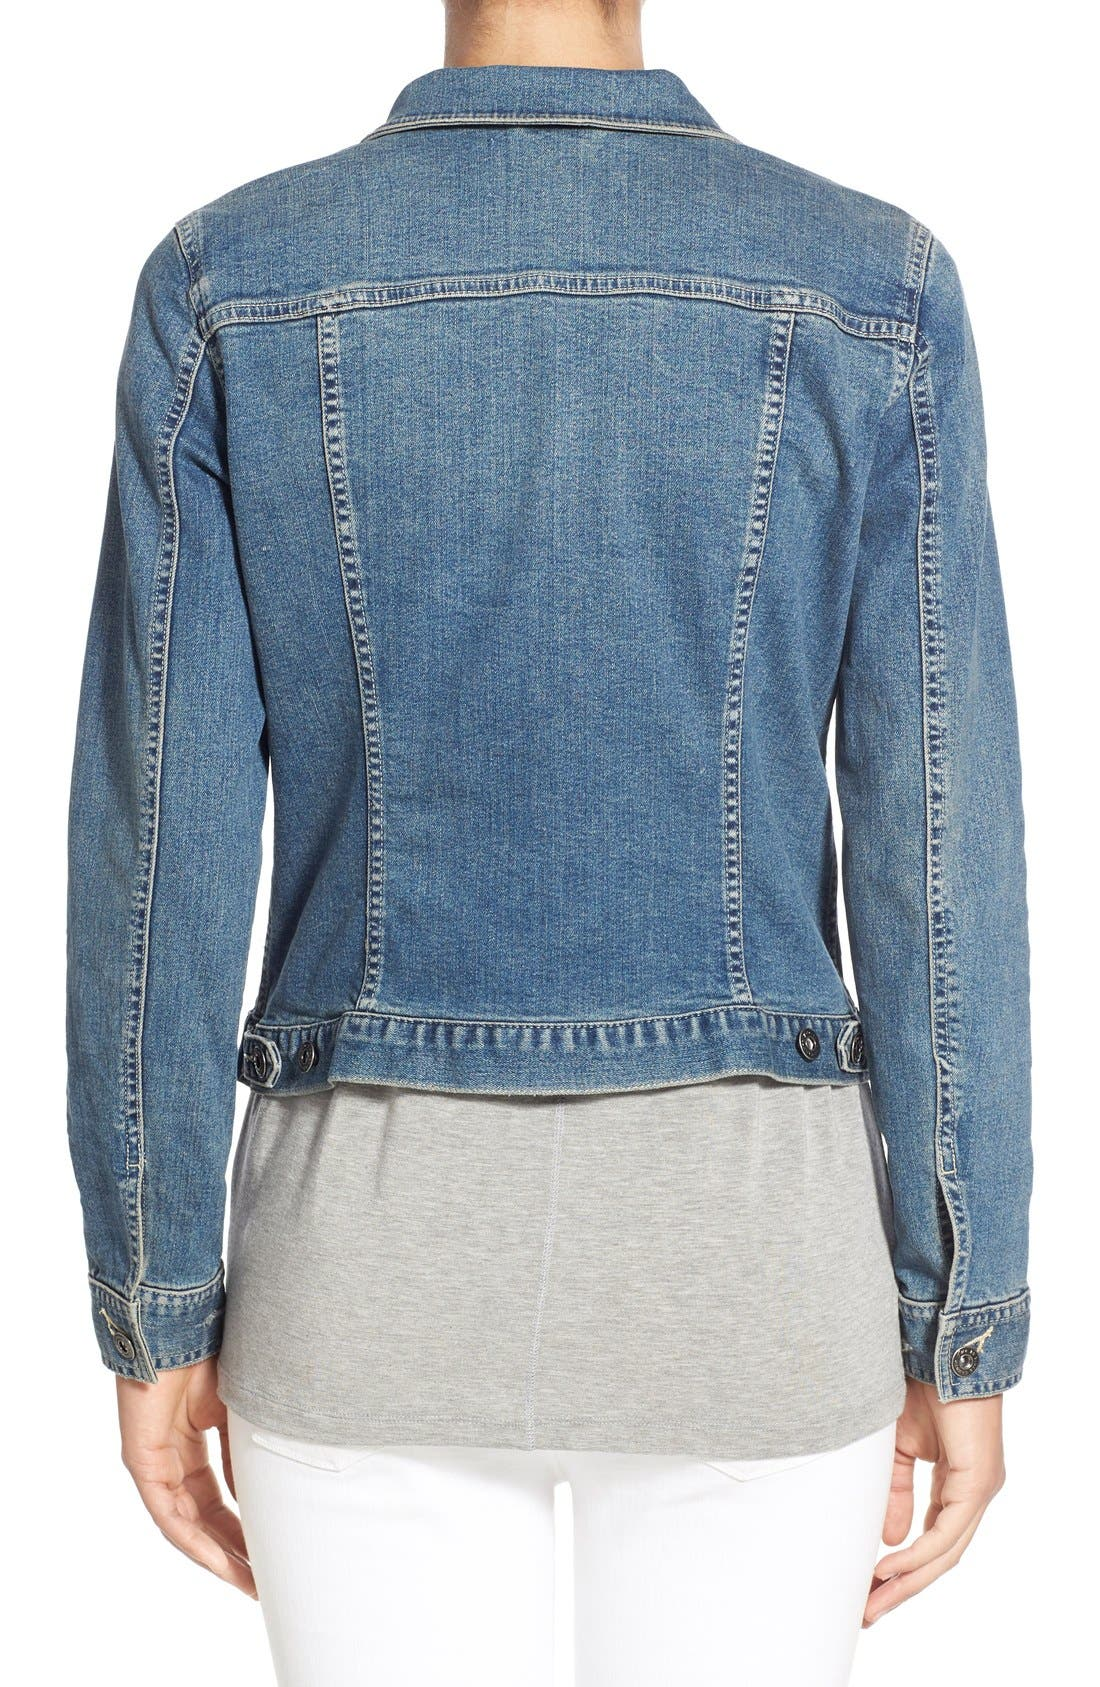 Alternate Image 3  - Two by Vince Camuto Jean Jacket (Regular & Petite)